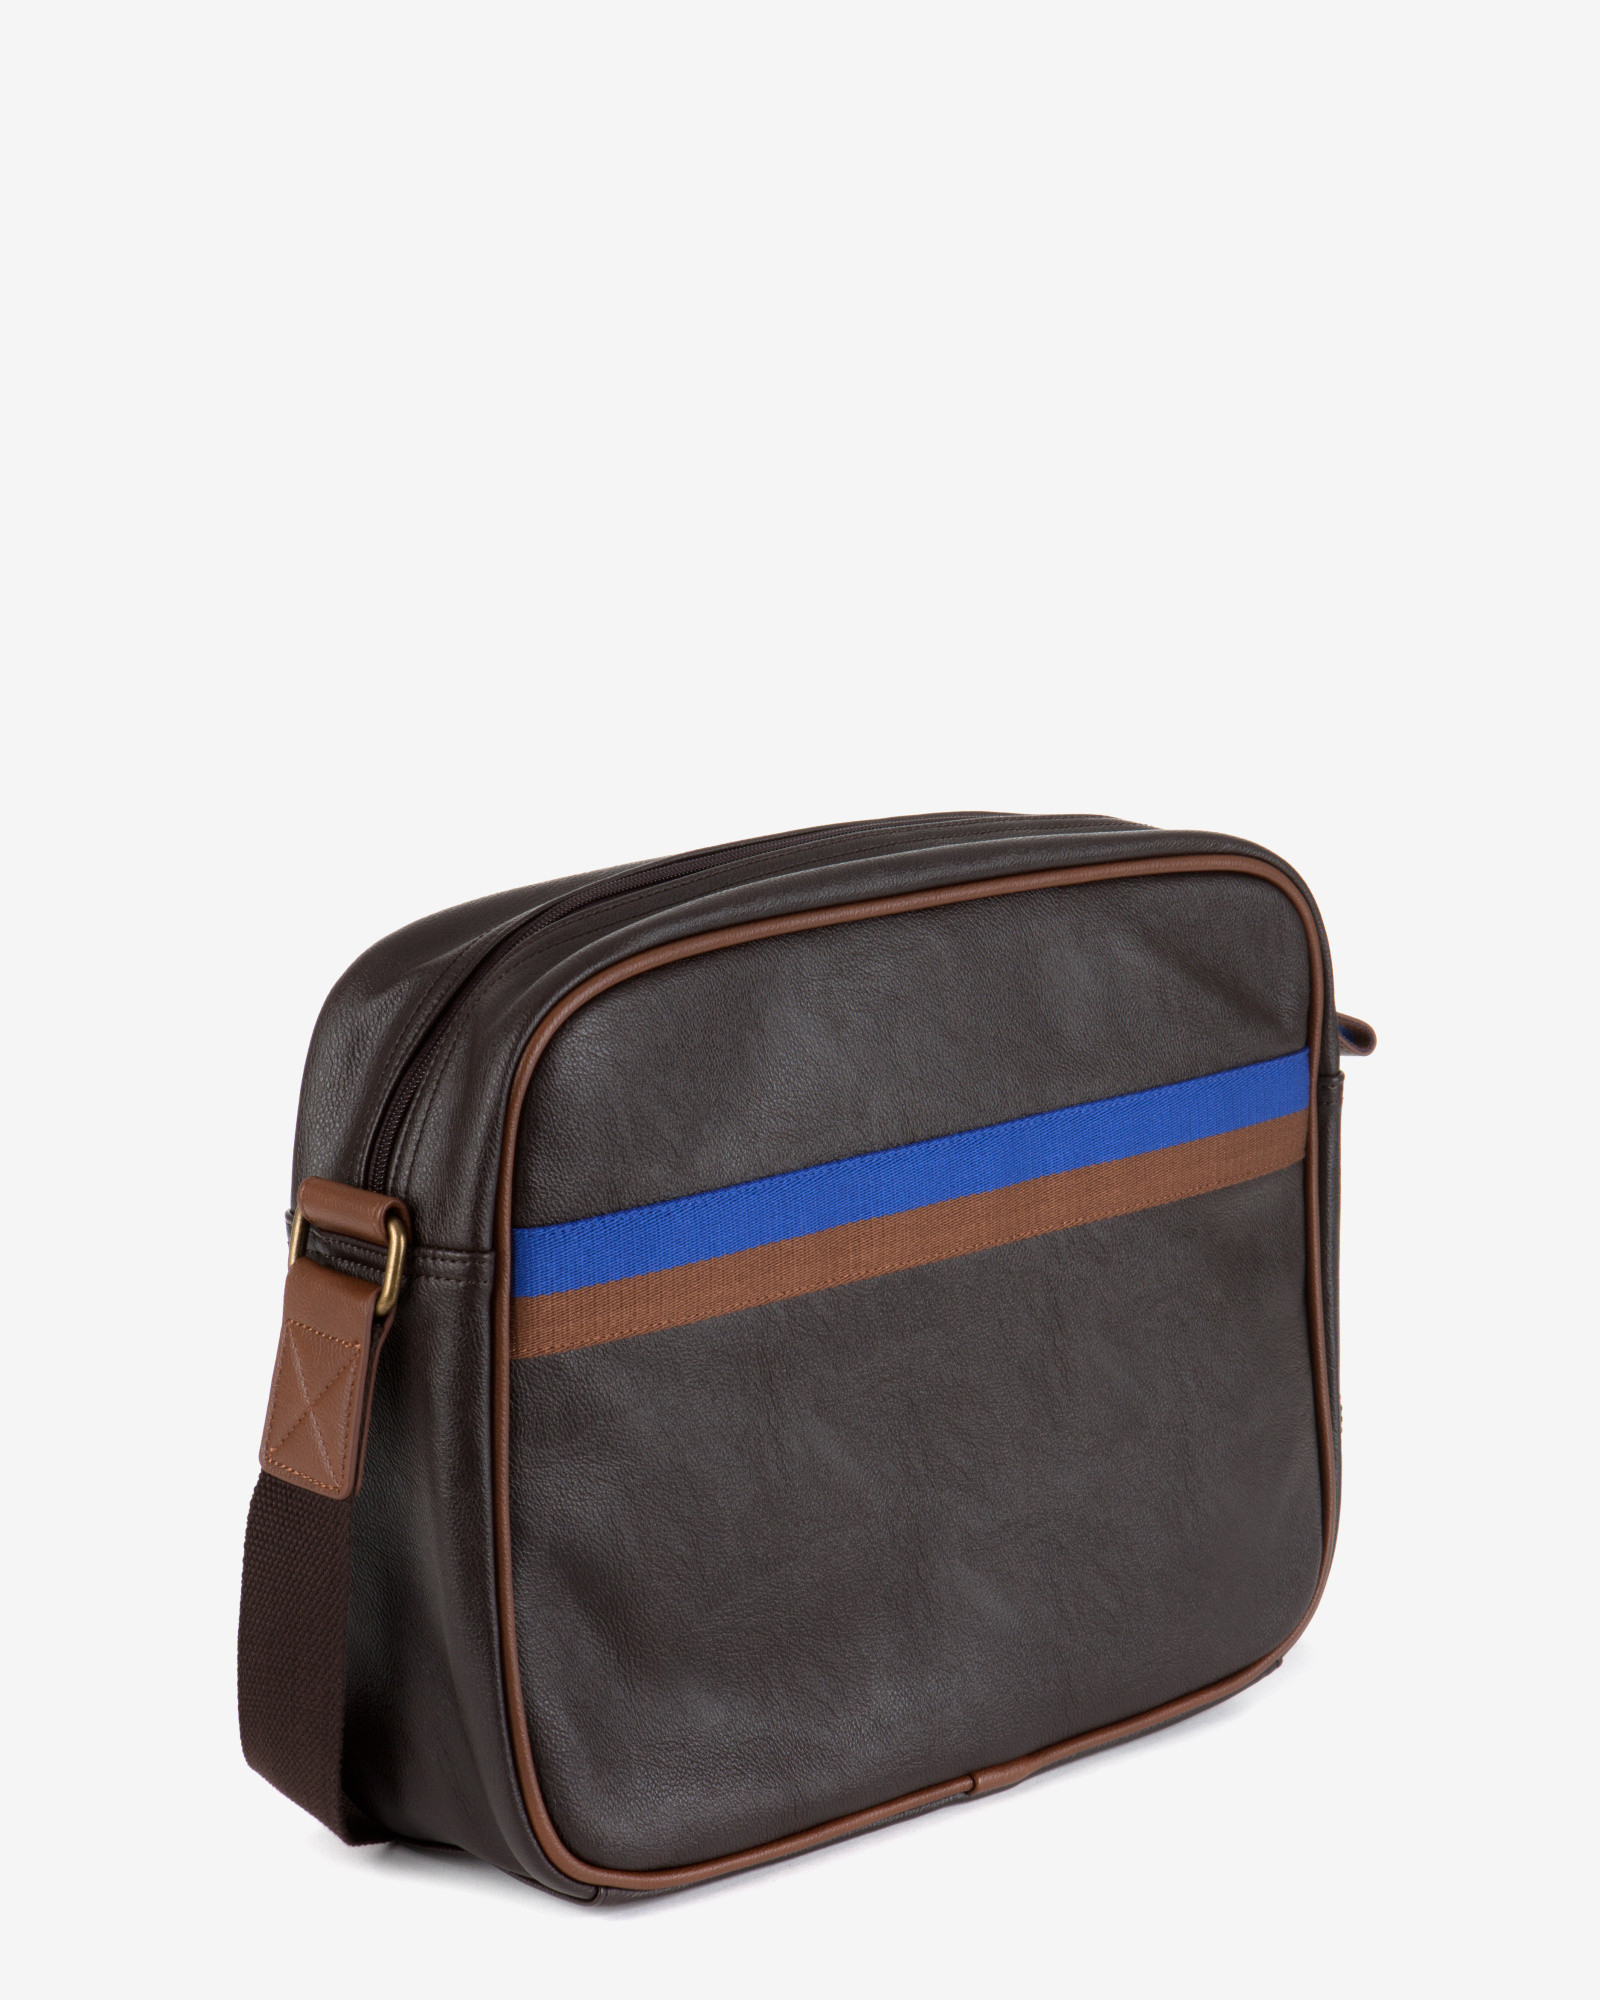 d3d29927f91e4 Lyst - Ted Baker Cross Body Document Bag in Brown for Men